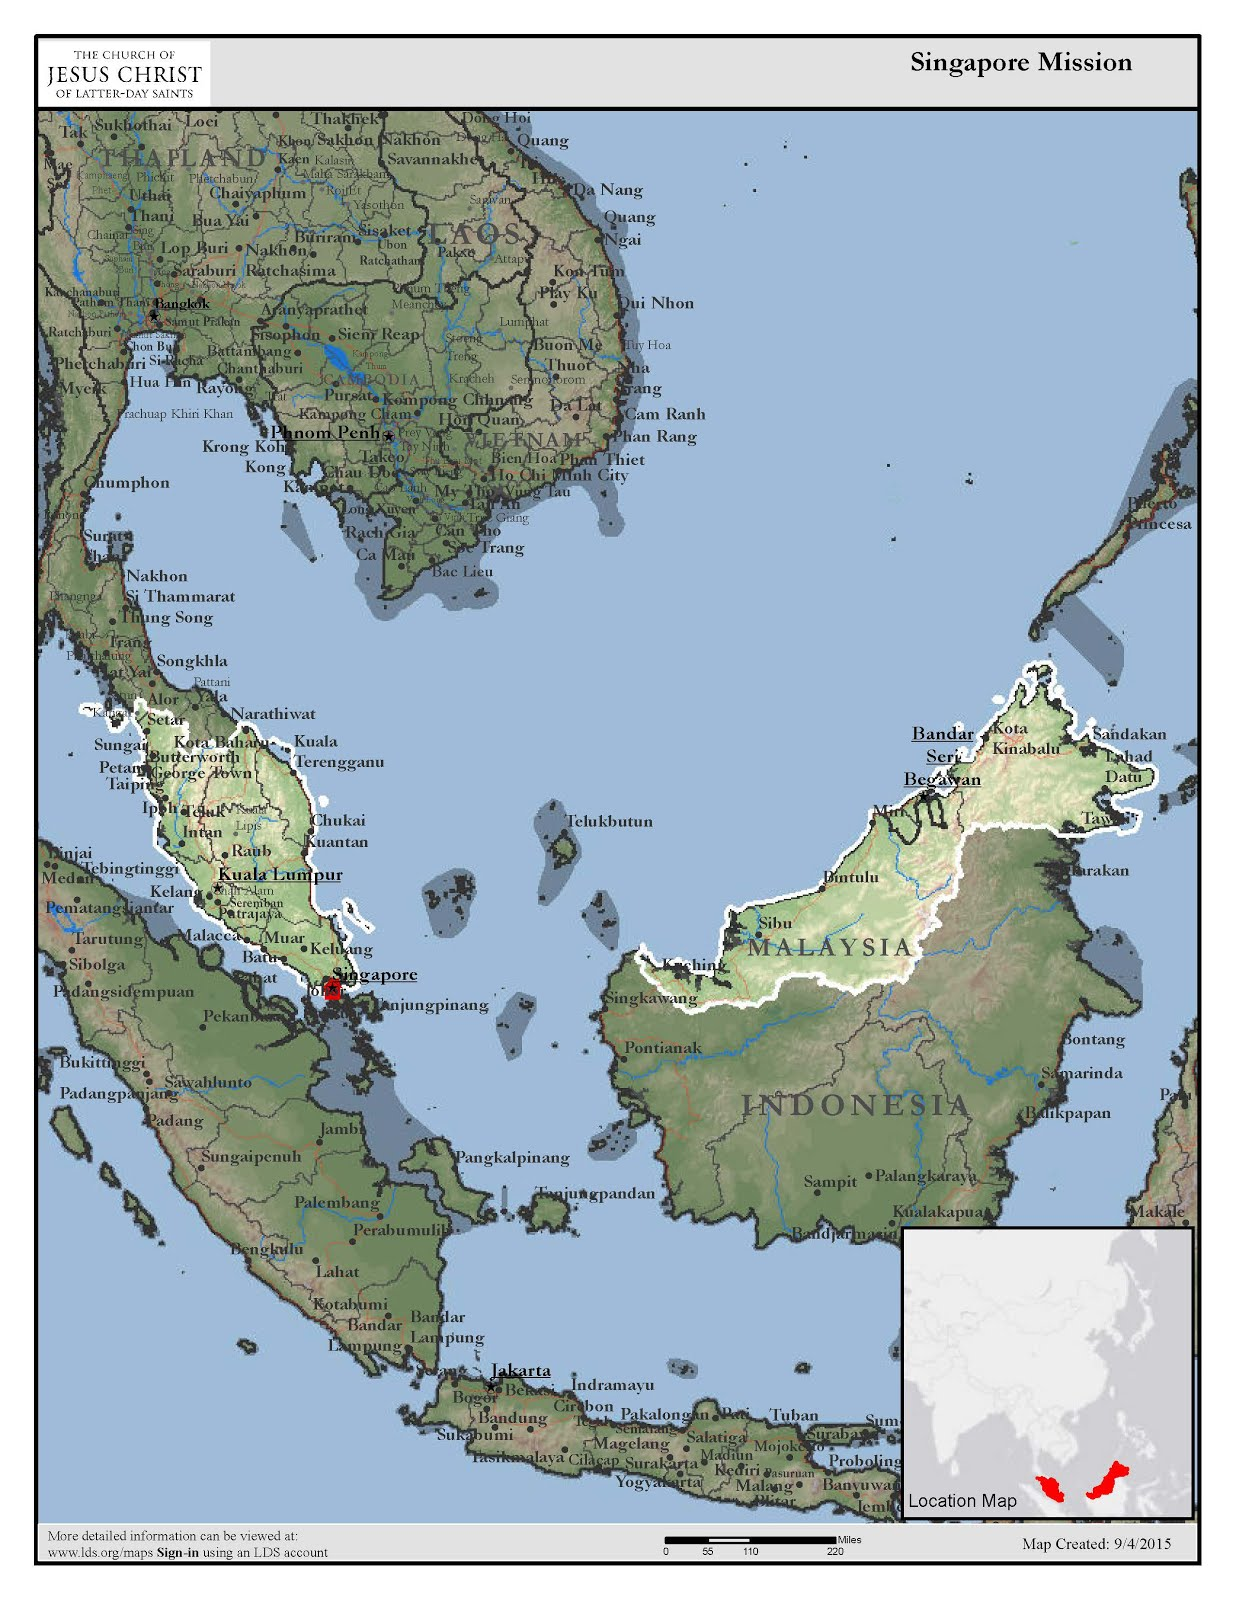 Singapore/Malaysian Region Mission Map